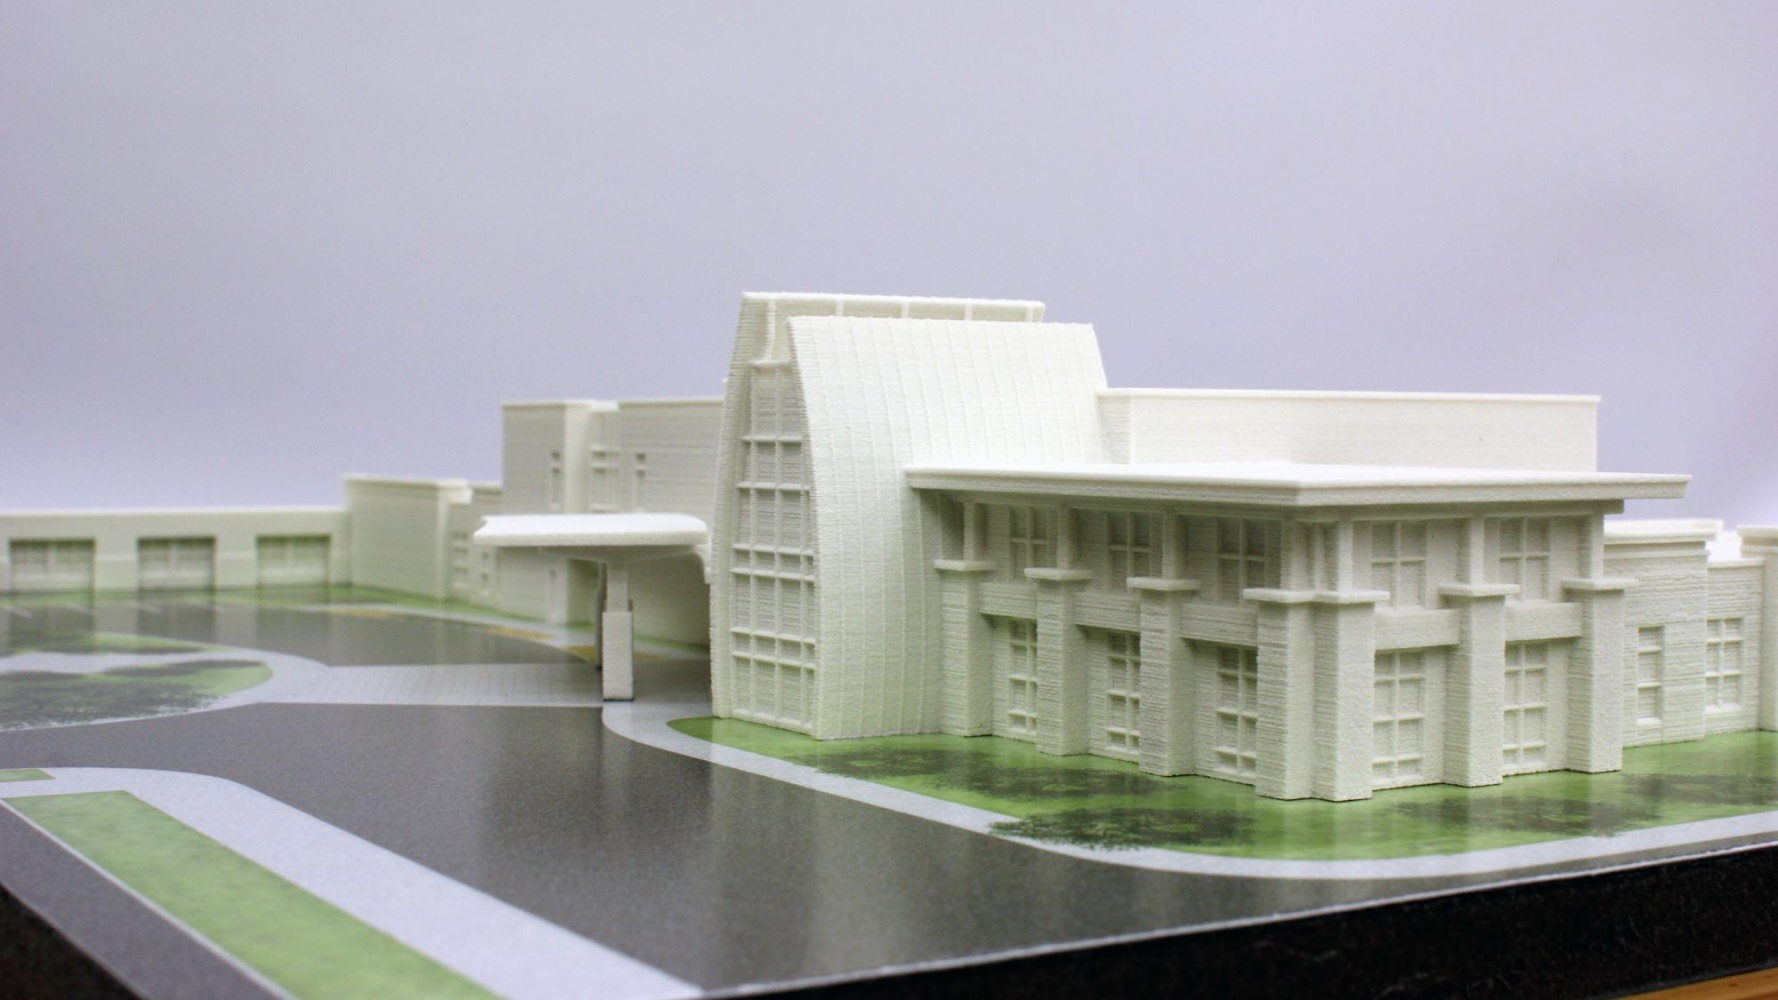 Color architecture model